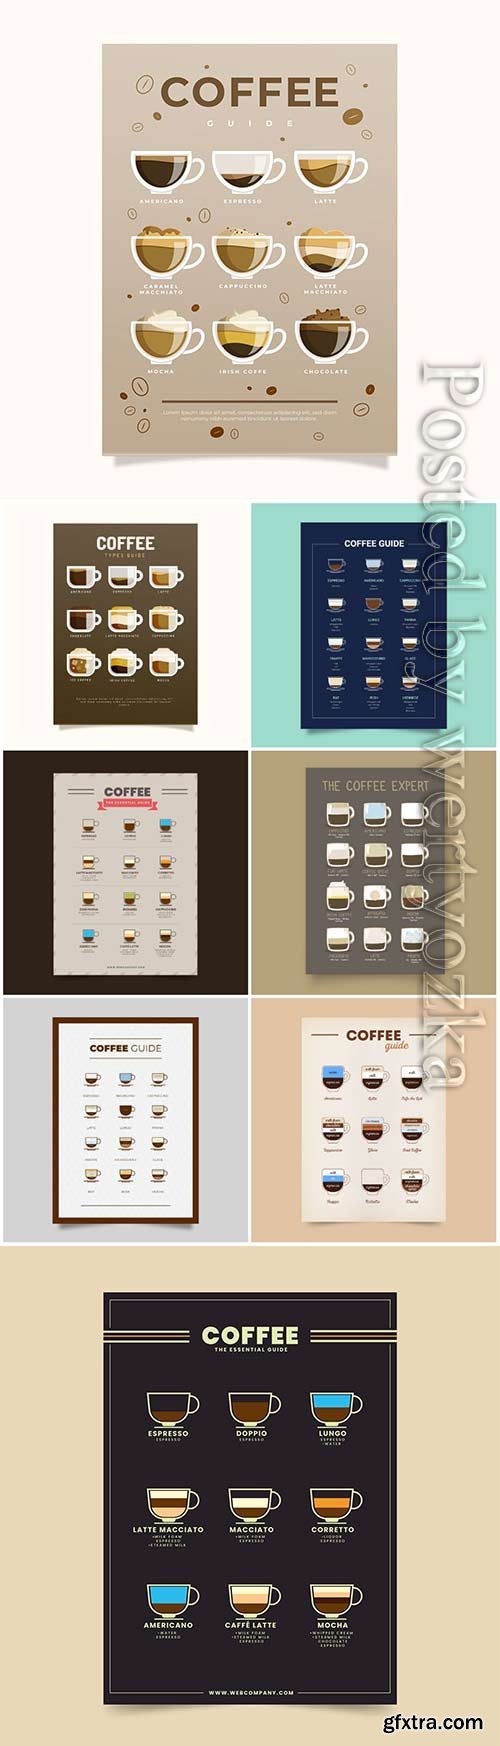 Coffee selection vector poster